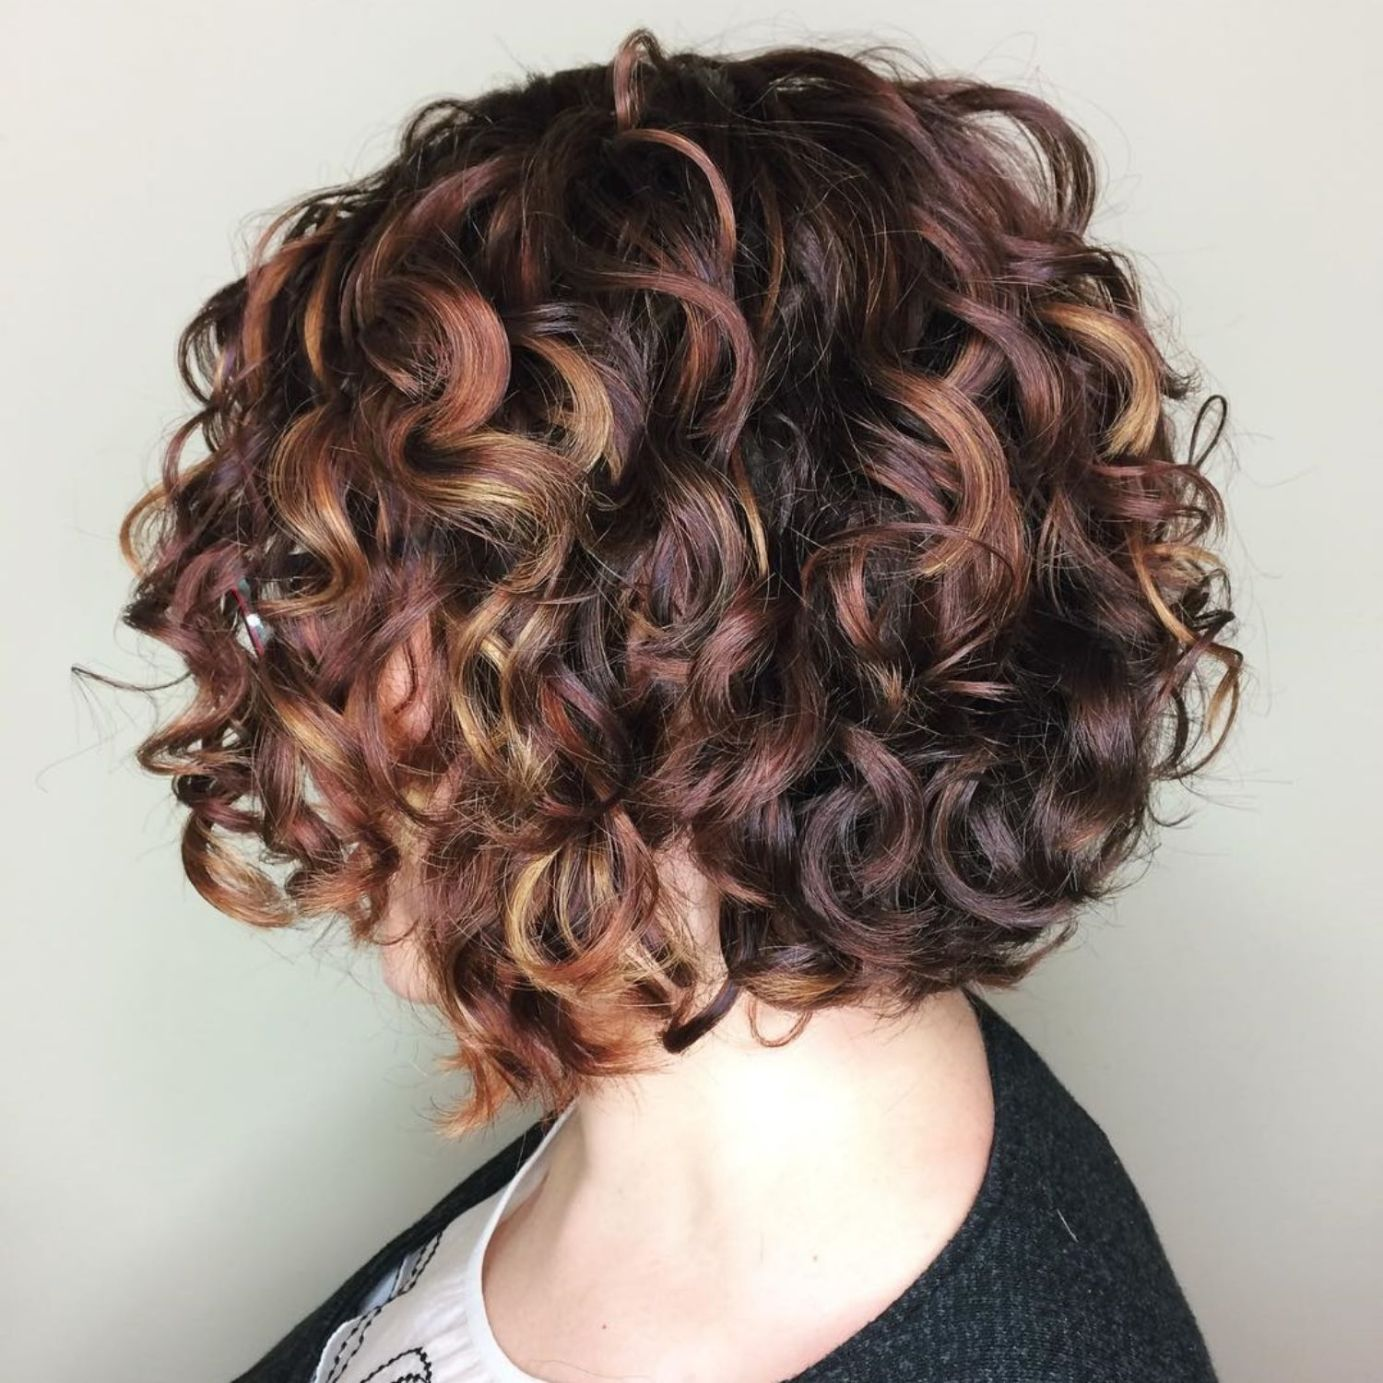 65 Different Versions of Curly Bob Hairstyle | Hair ideas in 2019 | Curly hair styles, Curly bob ...